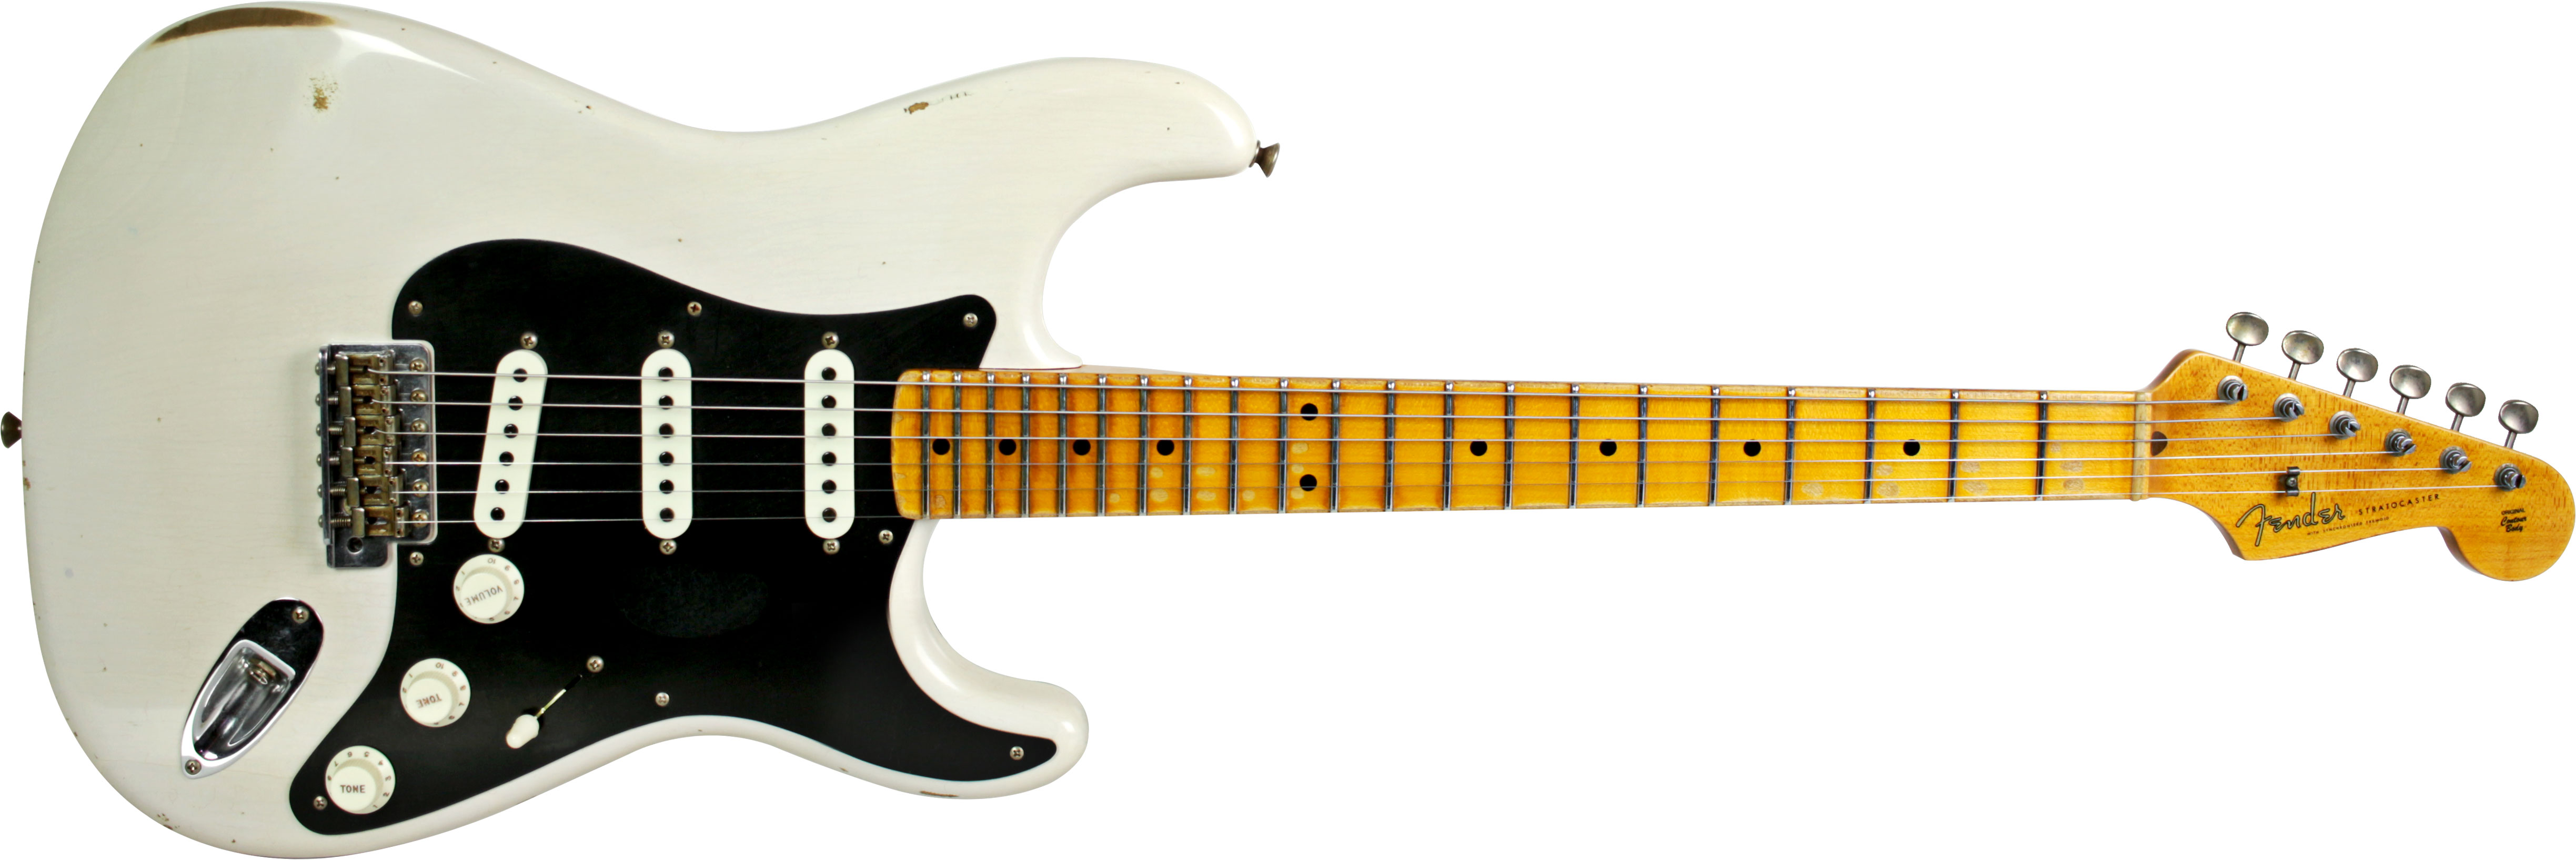 GUITARRA FENDER 155 8902 - STRATOCASTER ANCHO POBLANO JOURNEYMAN RELIC LTD EDITION - 801 - WH BLOND